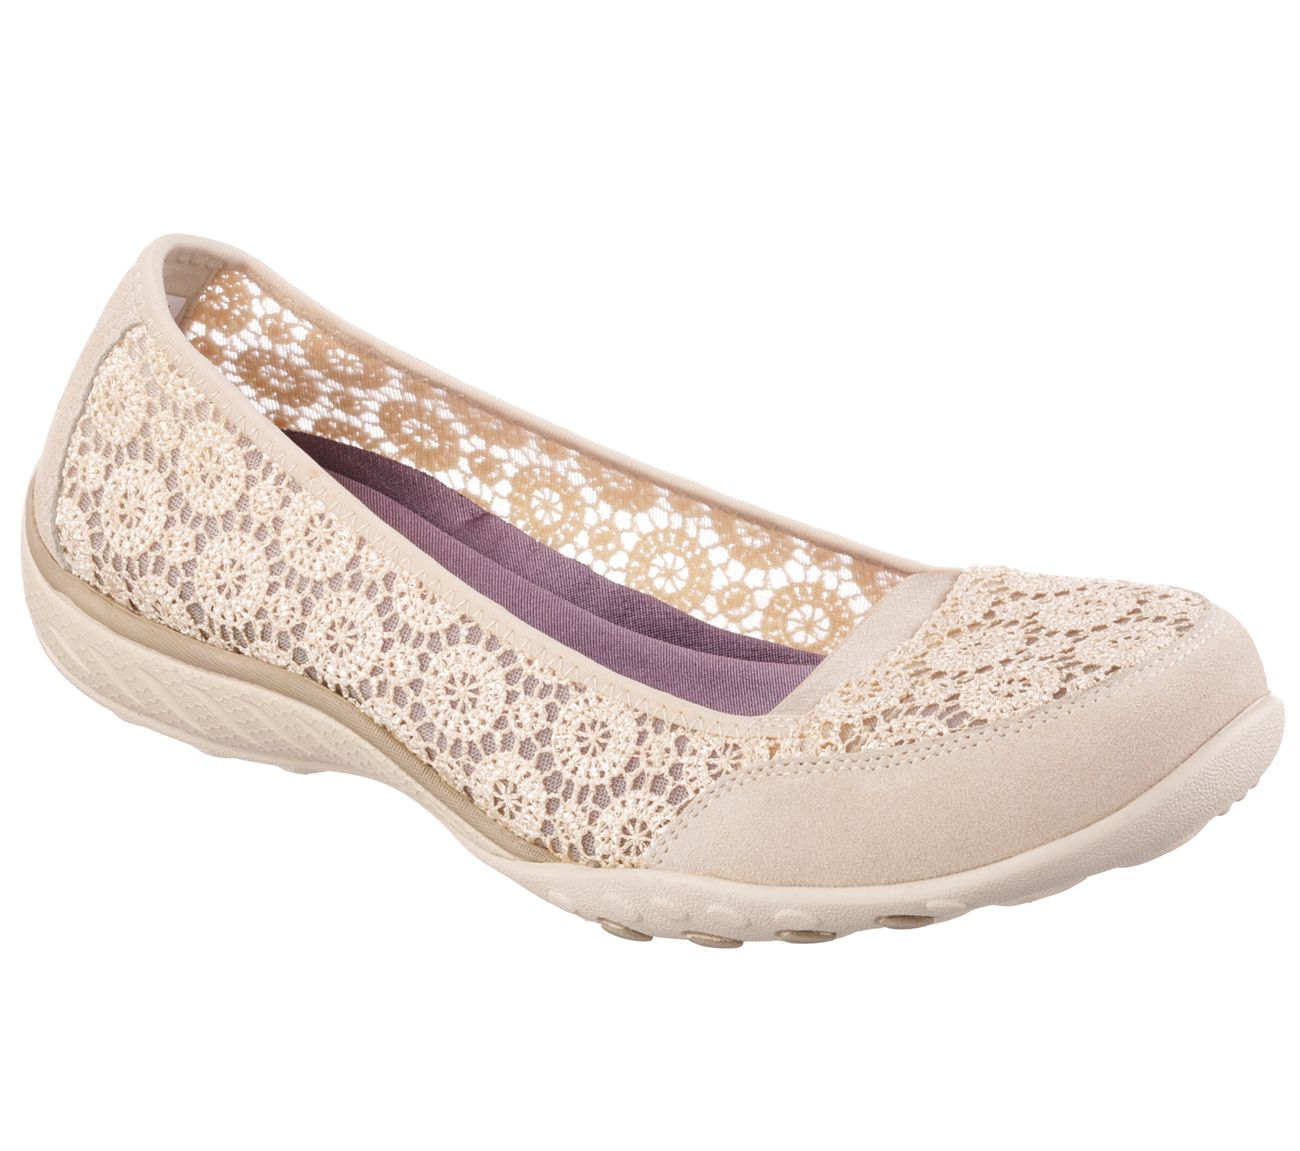 Sermón Asumir artería  Relaxed Fit: Breathe Easy - Pretty Factor | Sketchers shoes women, Skechers  relaxed fit, Lace sneakers